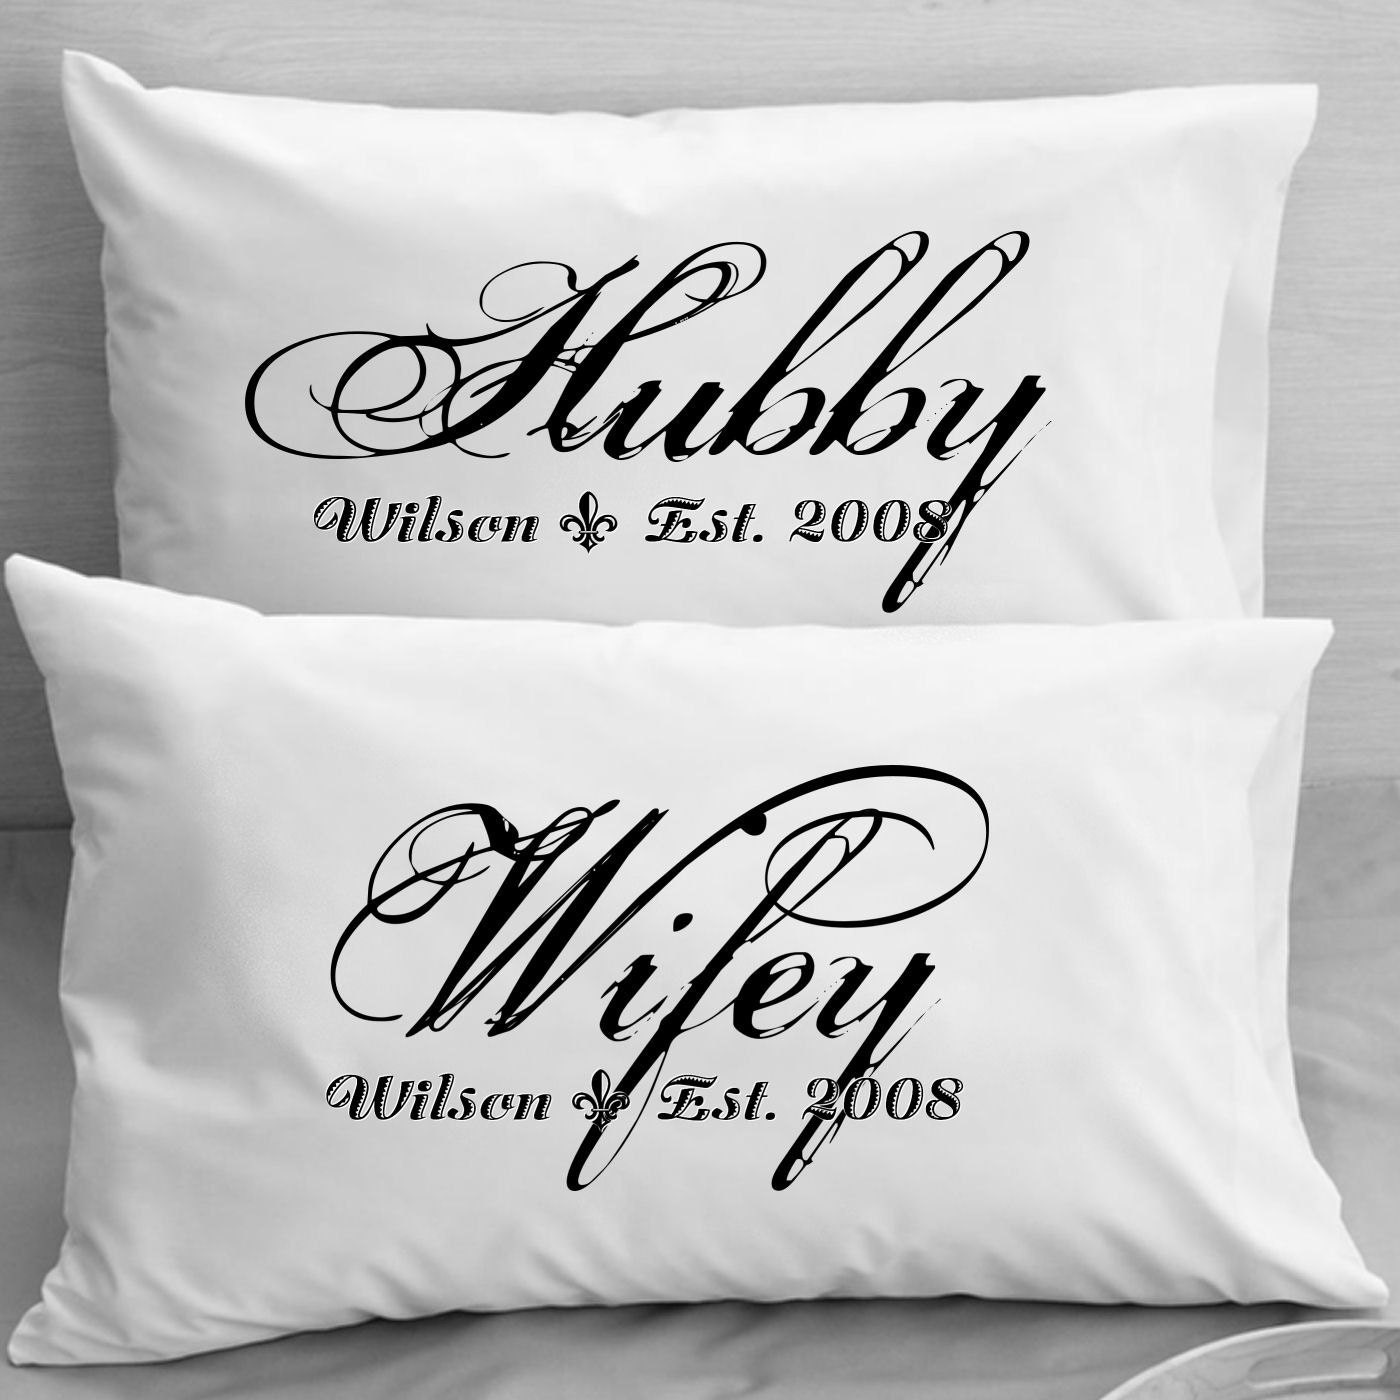 Unique Gifts For Husband On Wedding Day: Couples Pillow Cases Custom Personalized Wifey Hubby Wife